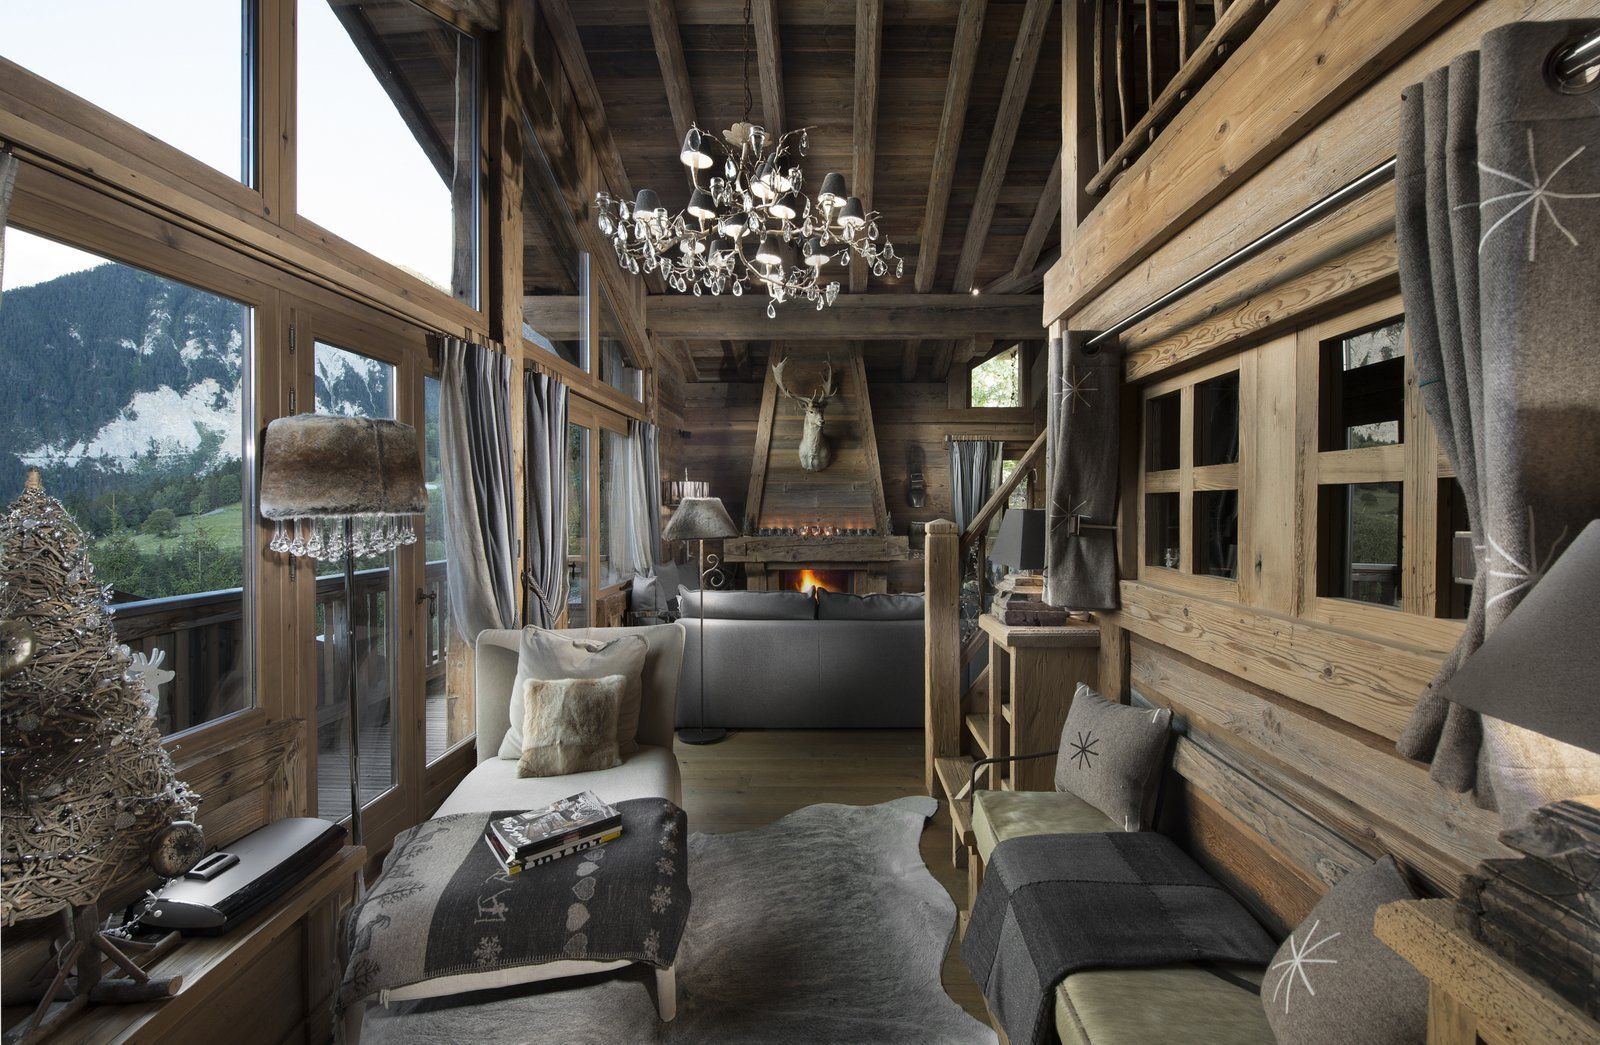 int rieur de chalet courchevel boiseries vieux bois chalet montagne pinterest vieux. Black Bedroom Furniture Sets. Home Design Ideas